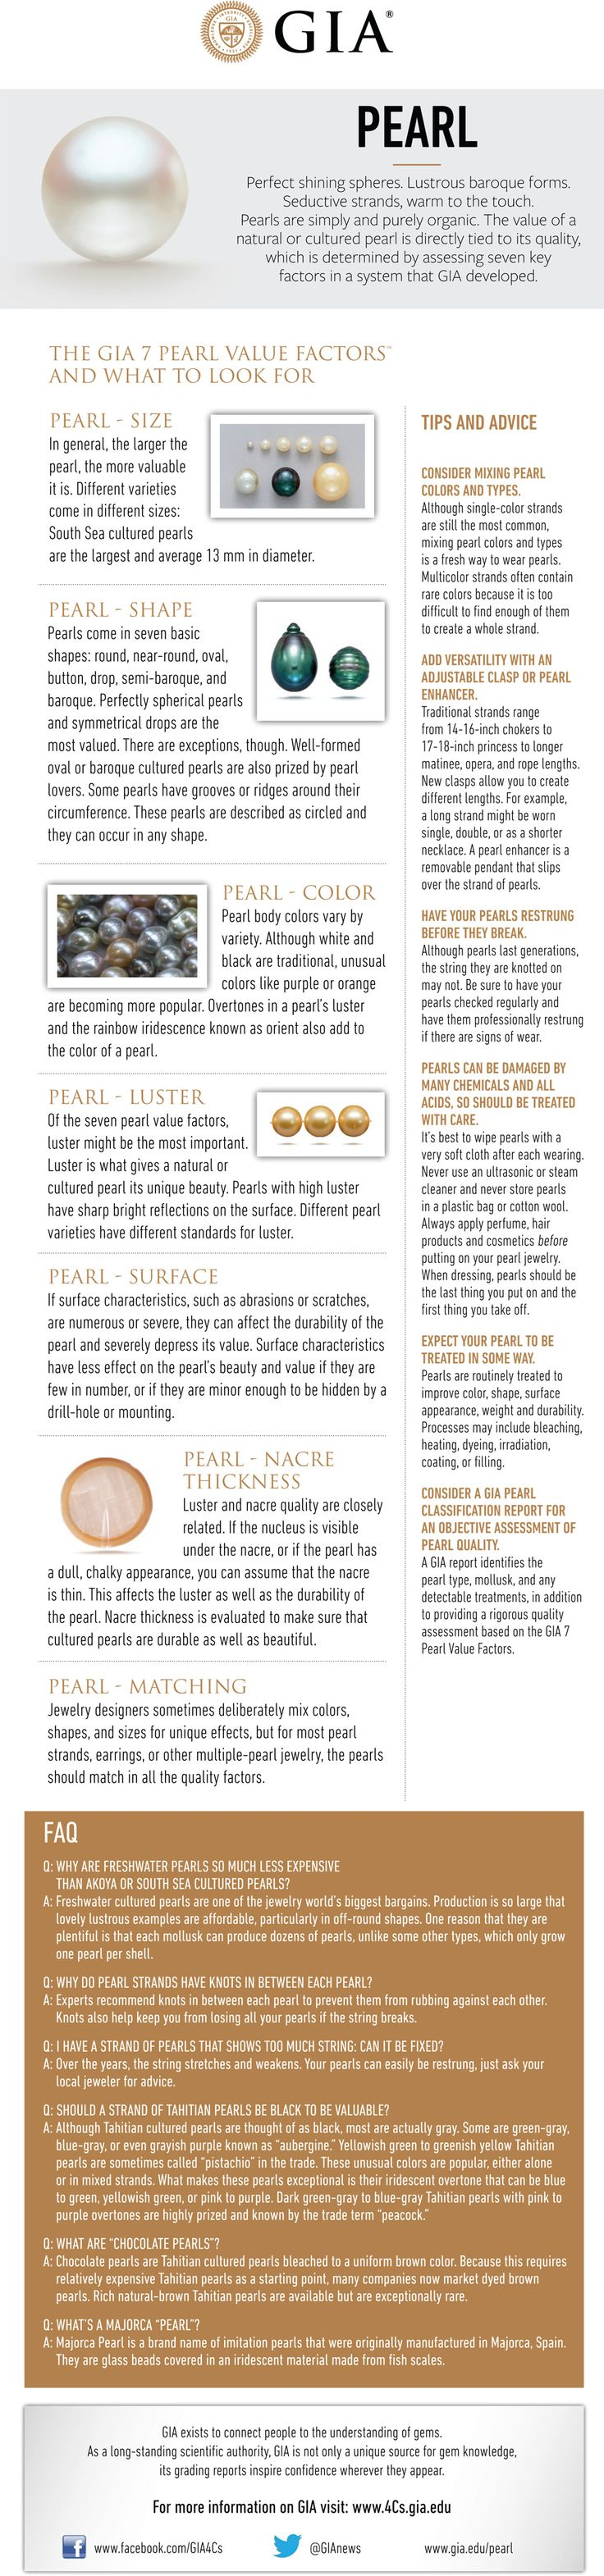 Shopping for Pearls? Here is a guide on what to look for.